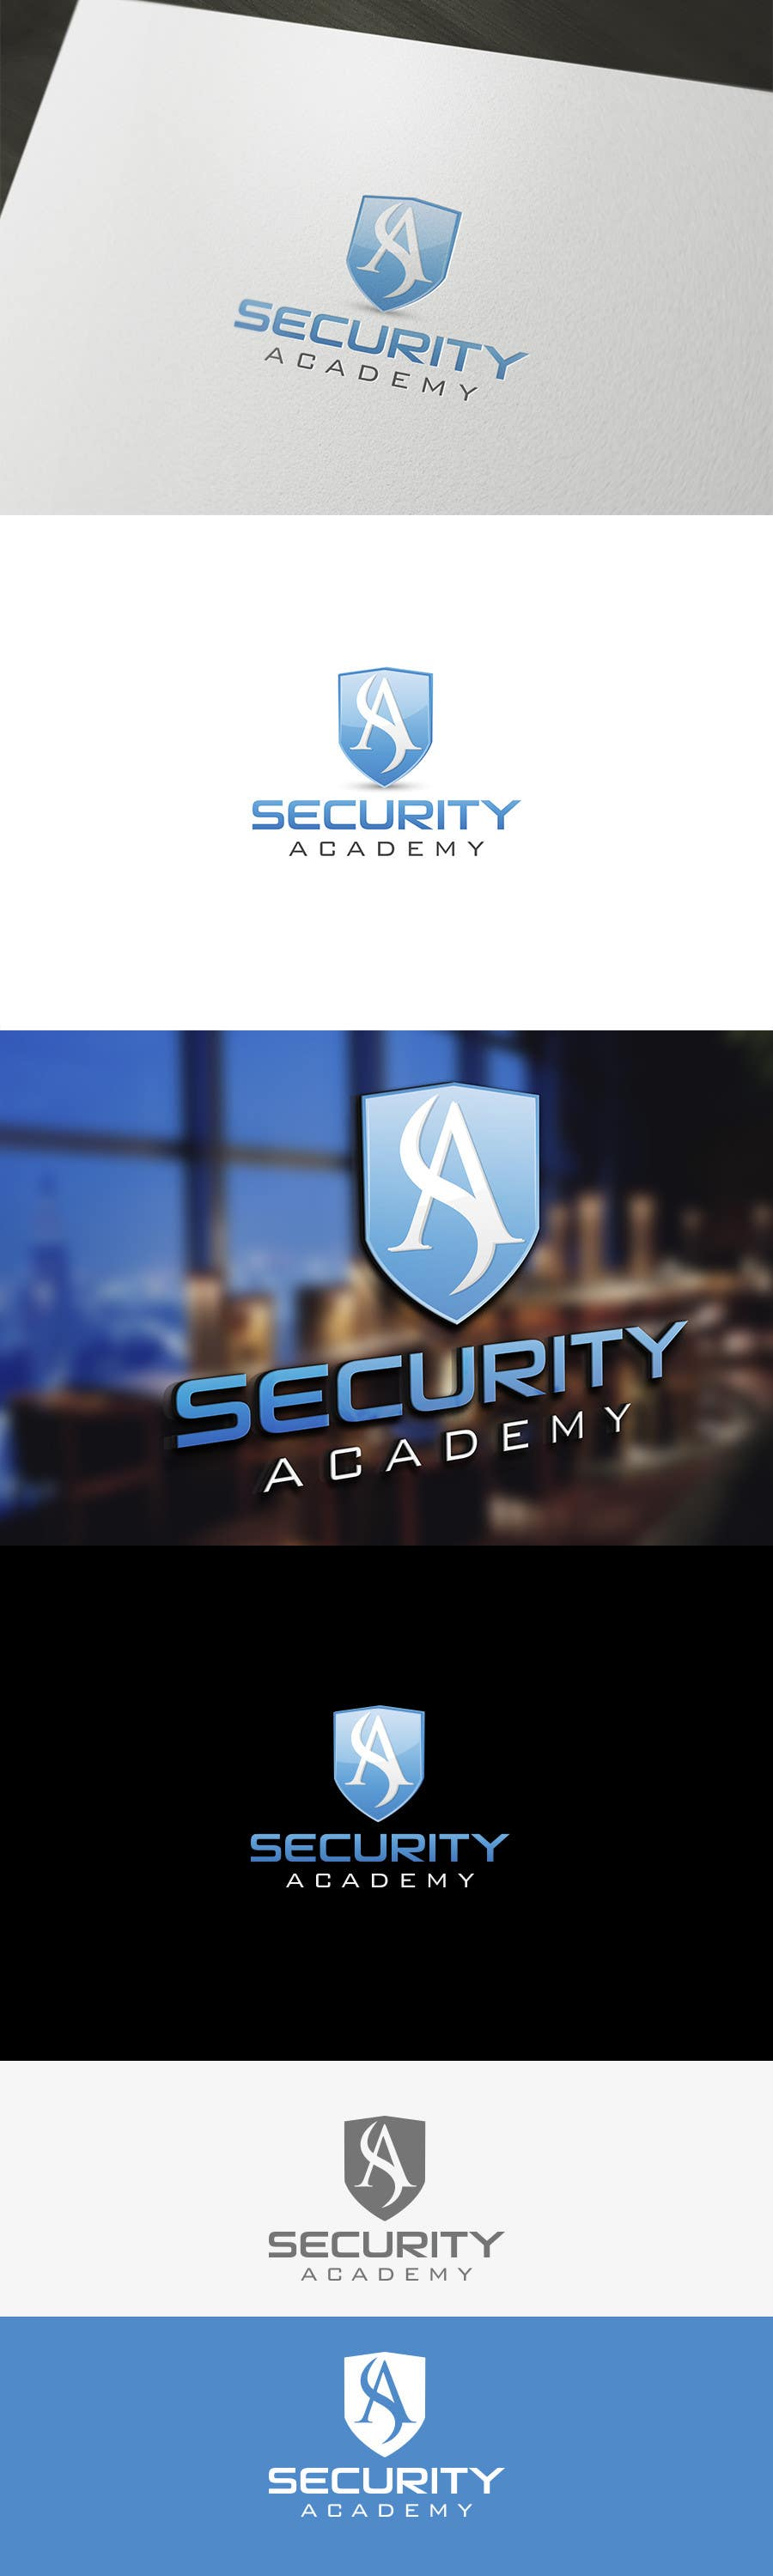 #91 for Design a Logo for Security Academy by logowizards